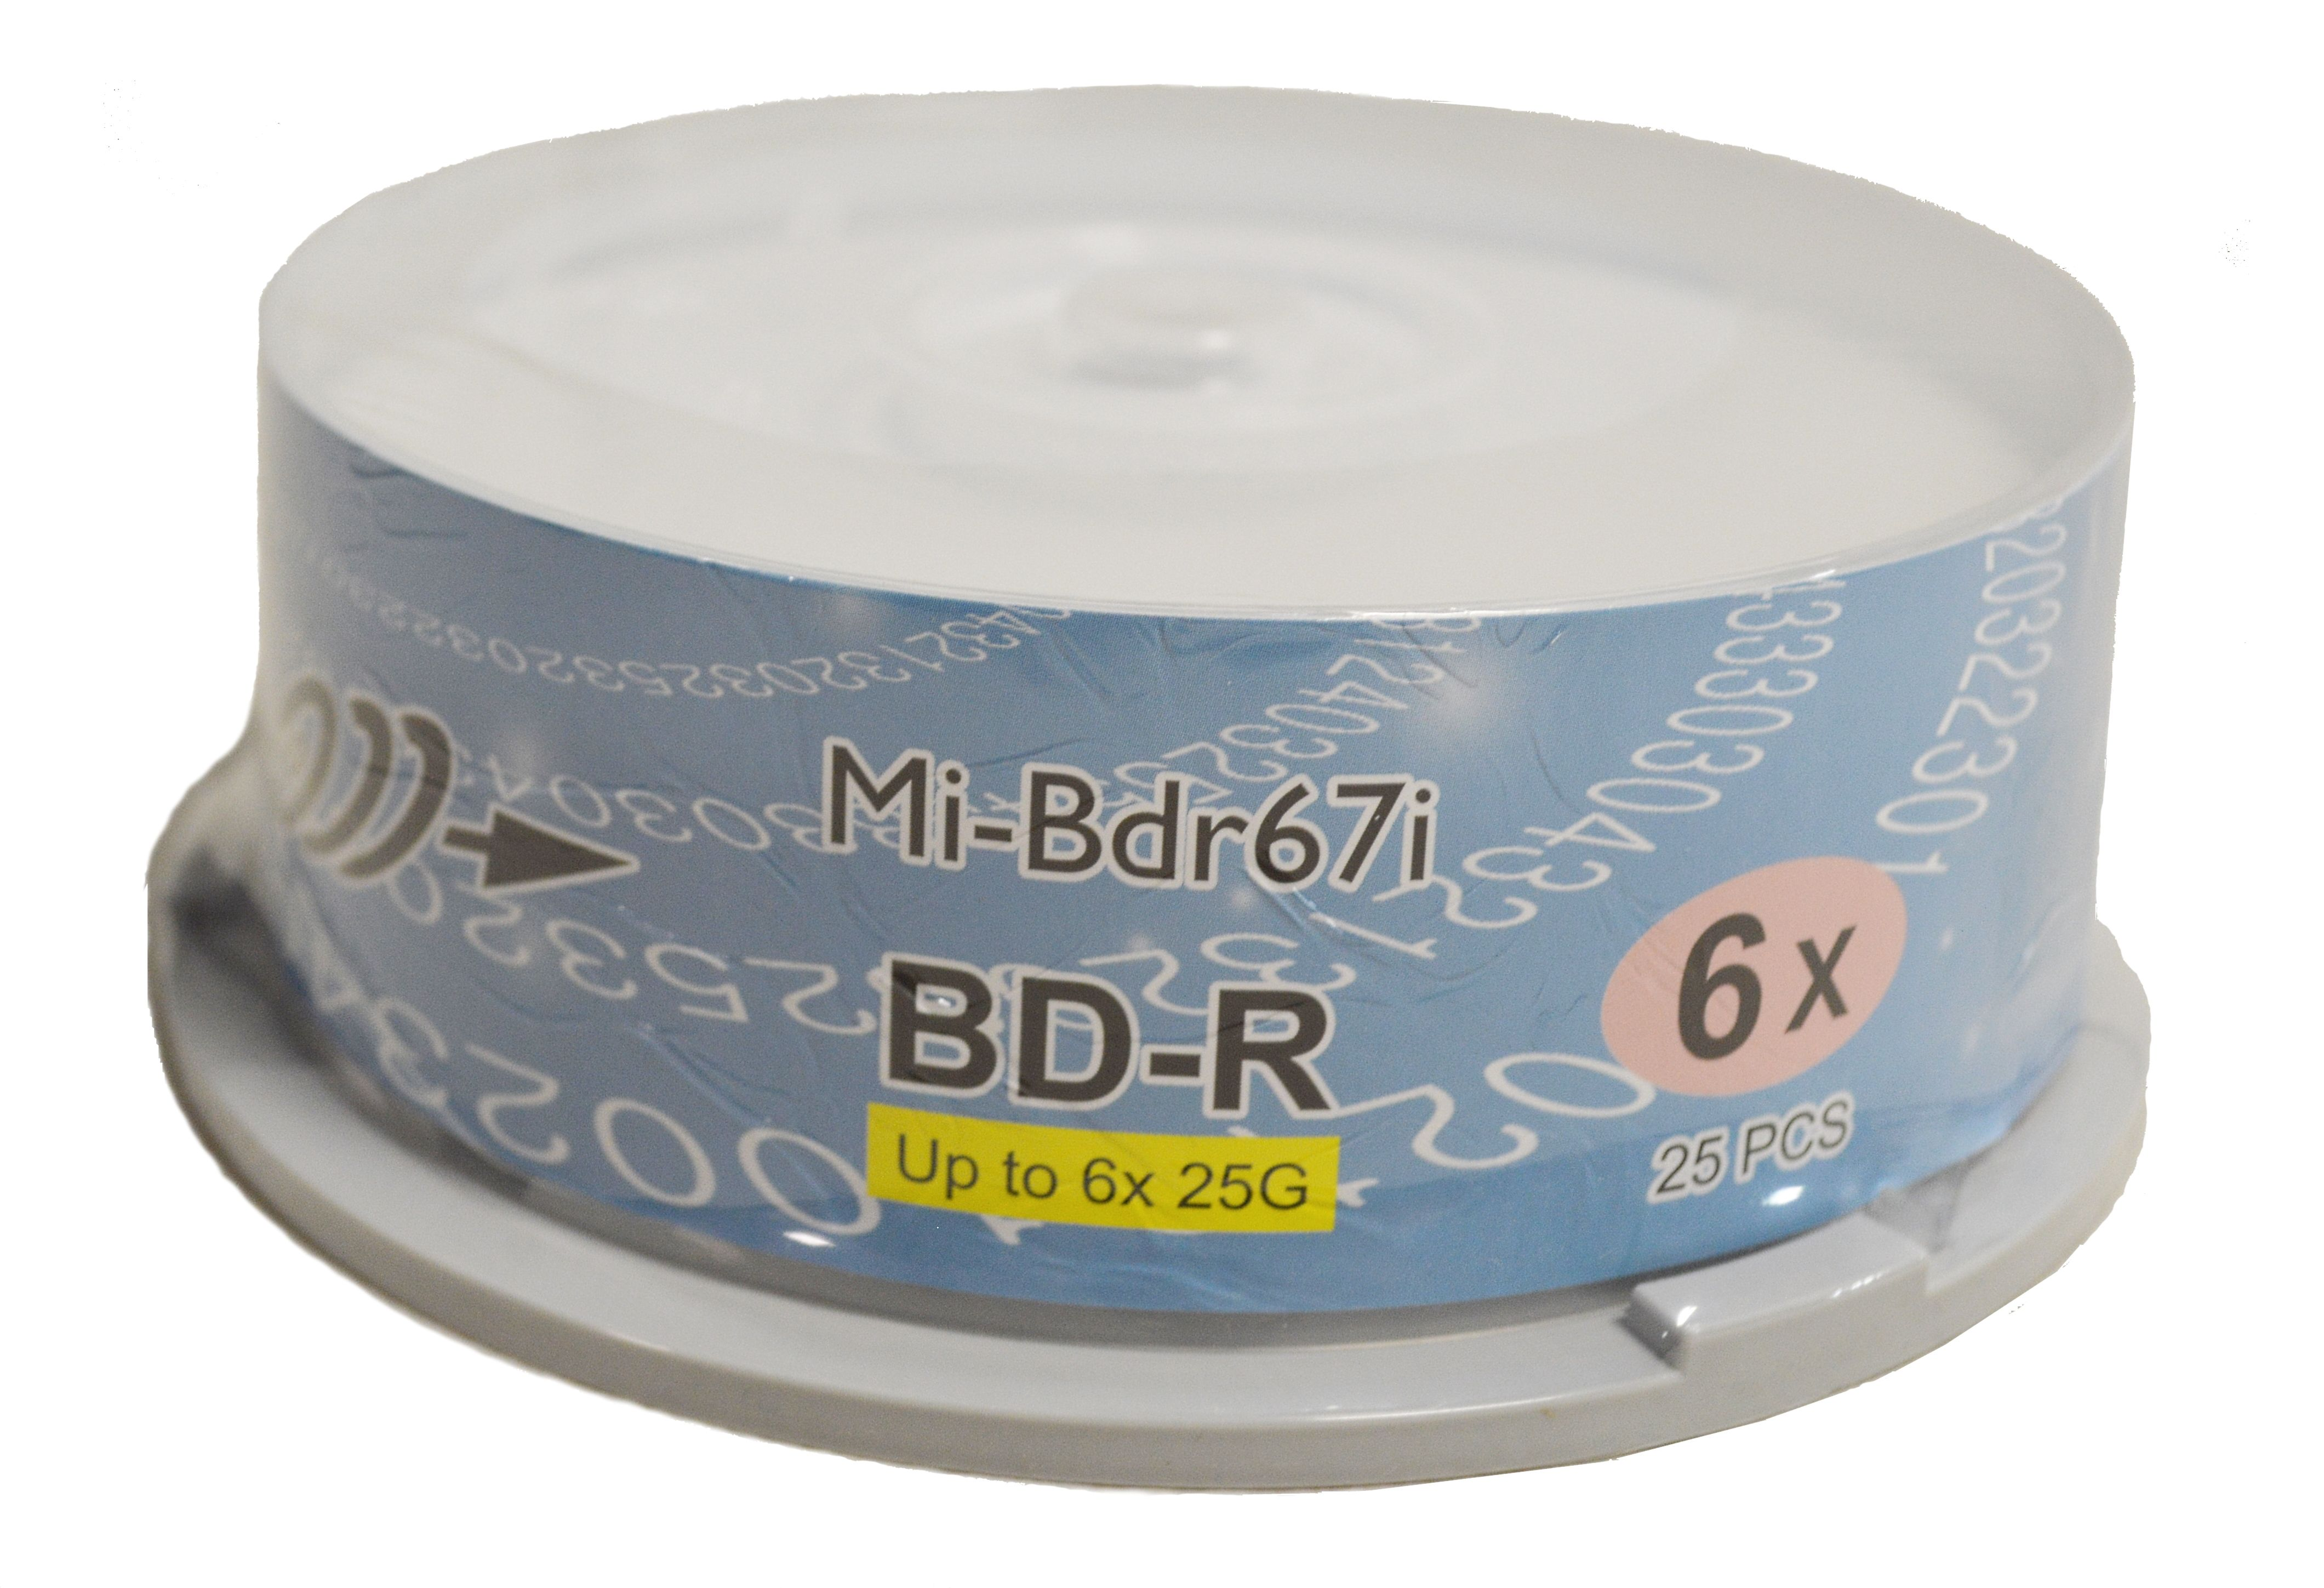 photograph about Printable Blu Ray Discs called Copystars Blu Ray Media Discs BD-R Disc 25 GB 6X White Inkjet Printable Blank Medias Solitary Layer Recordable Disc Spindle 25desktops